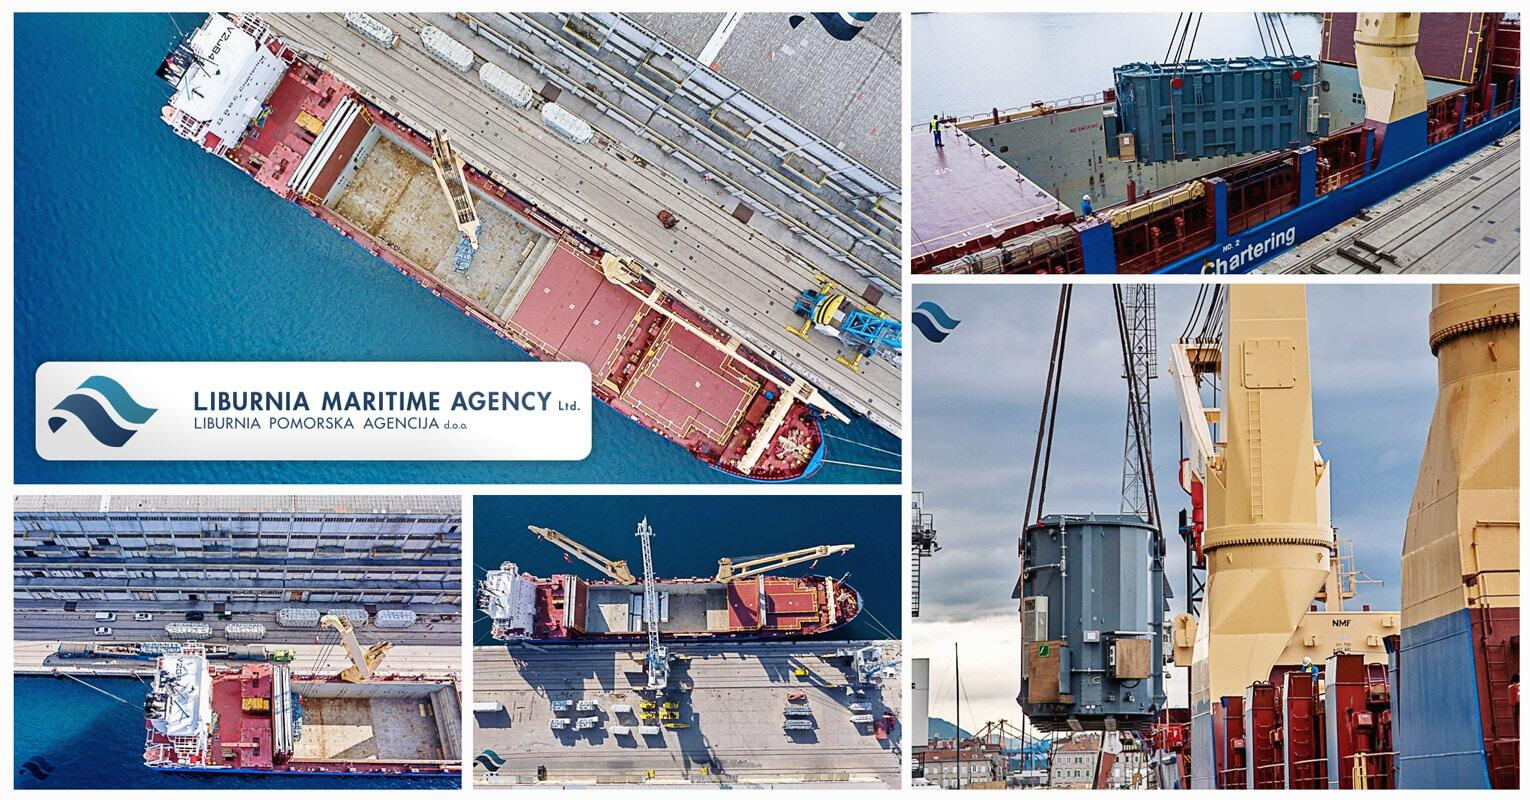 Liburnia Loaded 7000 Freight Tons in Port of Rijeka on BBC Vesuvius for Four Discharging Ports in the Middle East